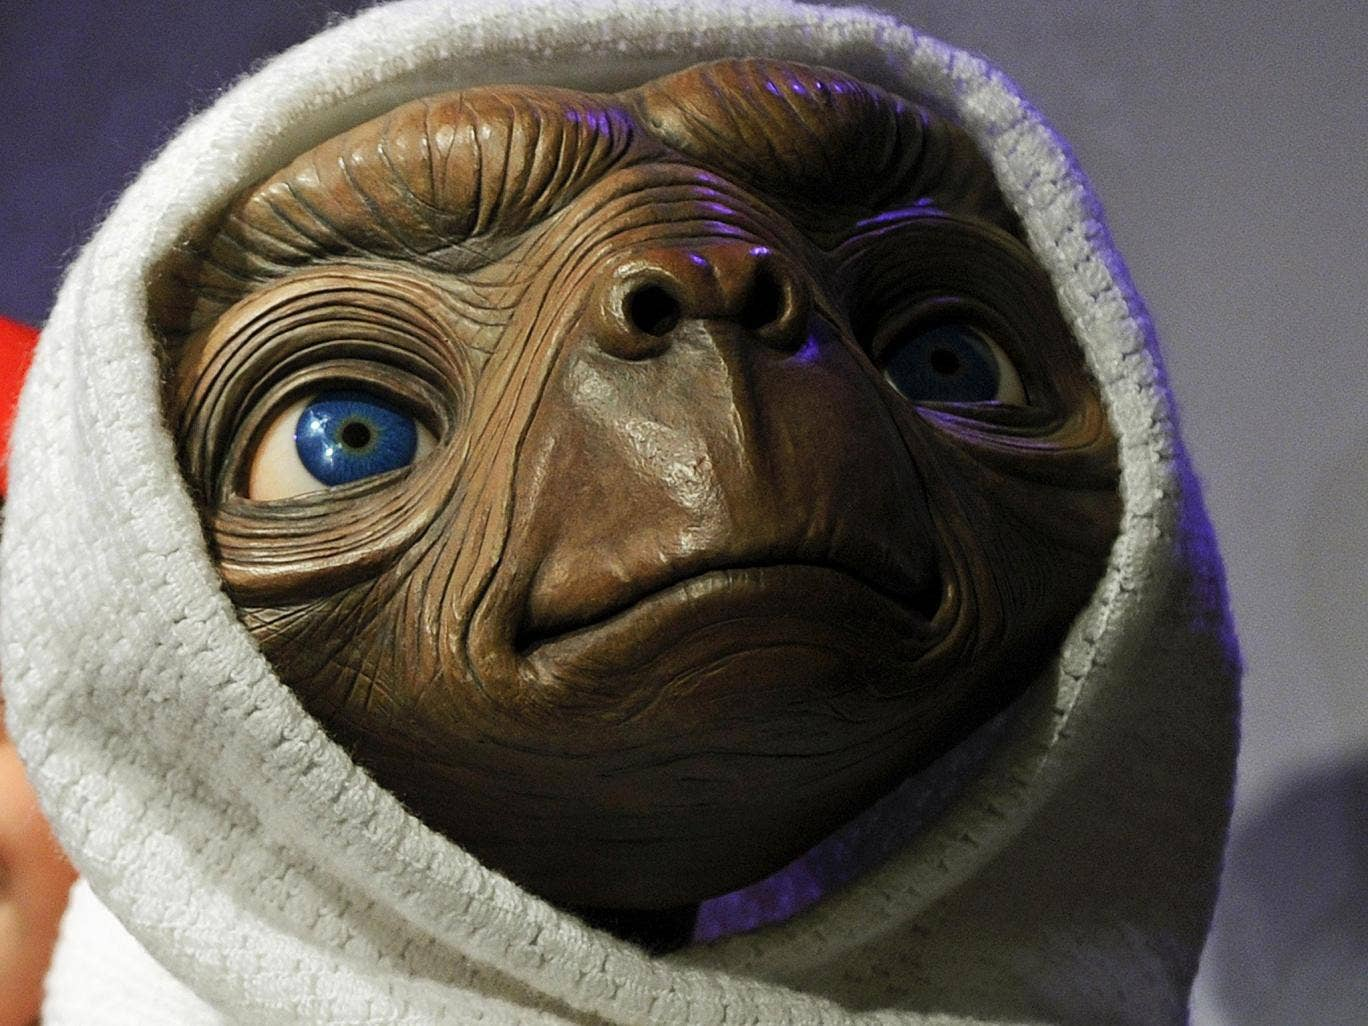 A new series will tell the story of Atari's reaction to the poor reception of the flop videogame E.T. the Extra-Terrestrial.